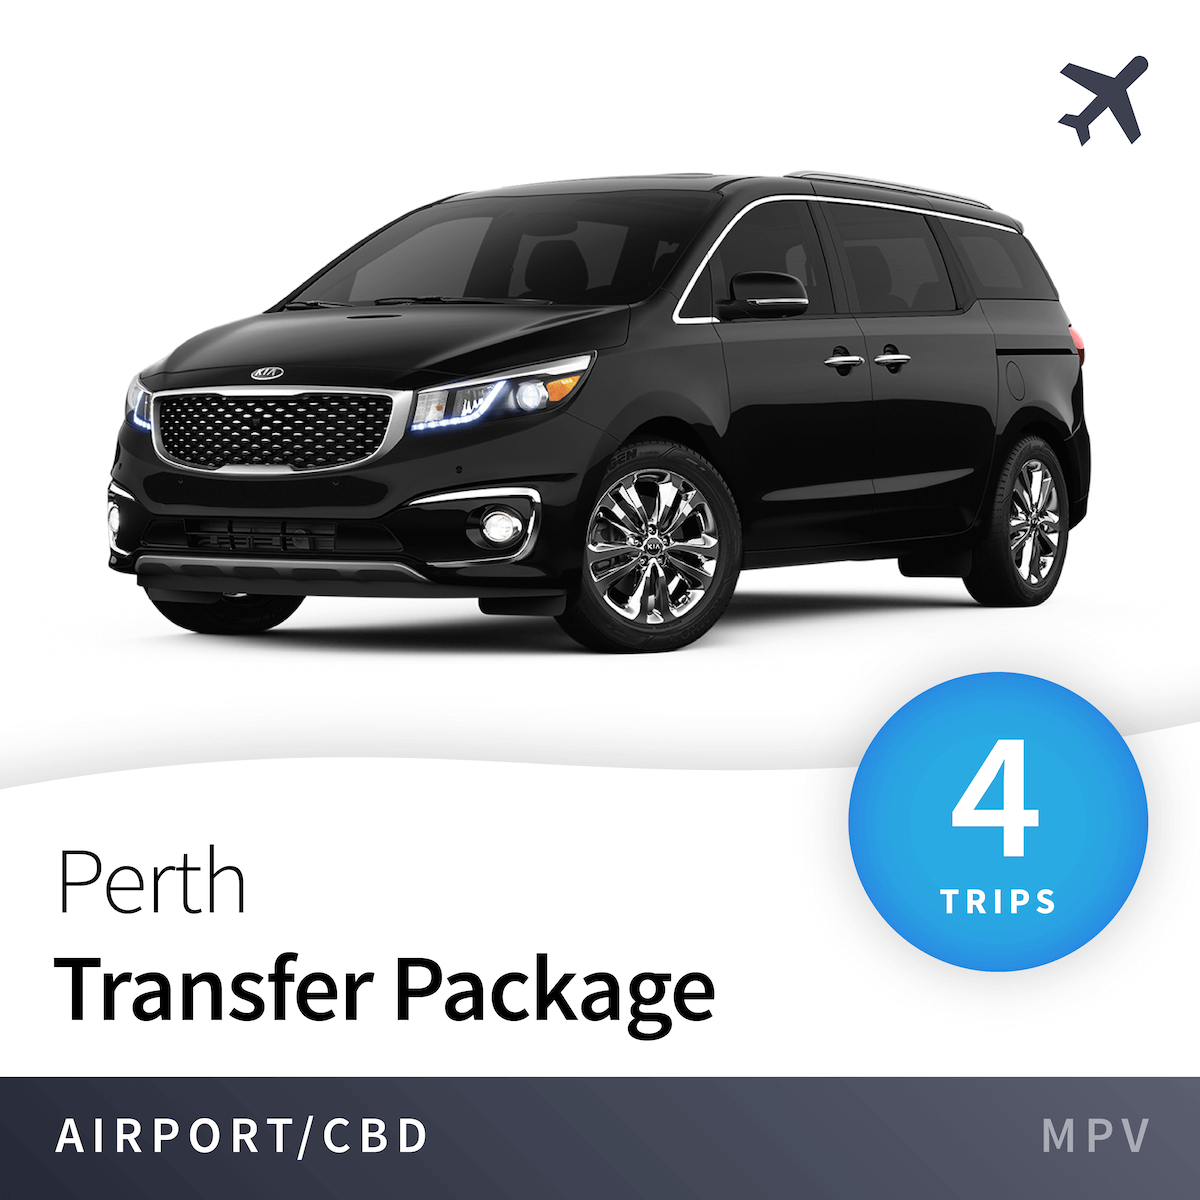 Perth Airport Transfer Package - MPV (4 Trips) 2